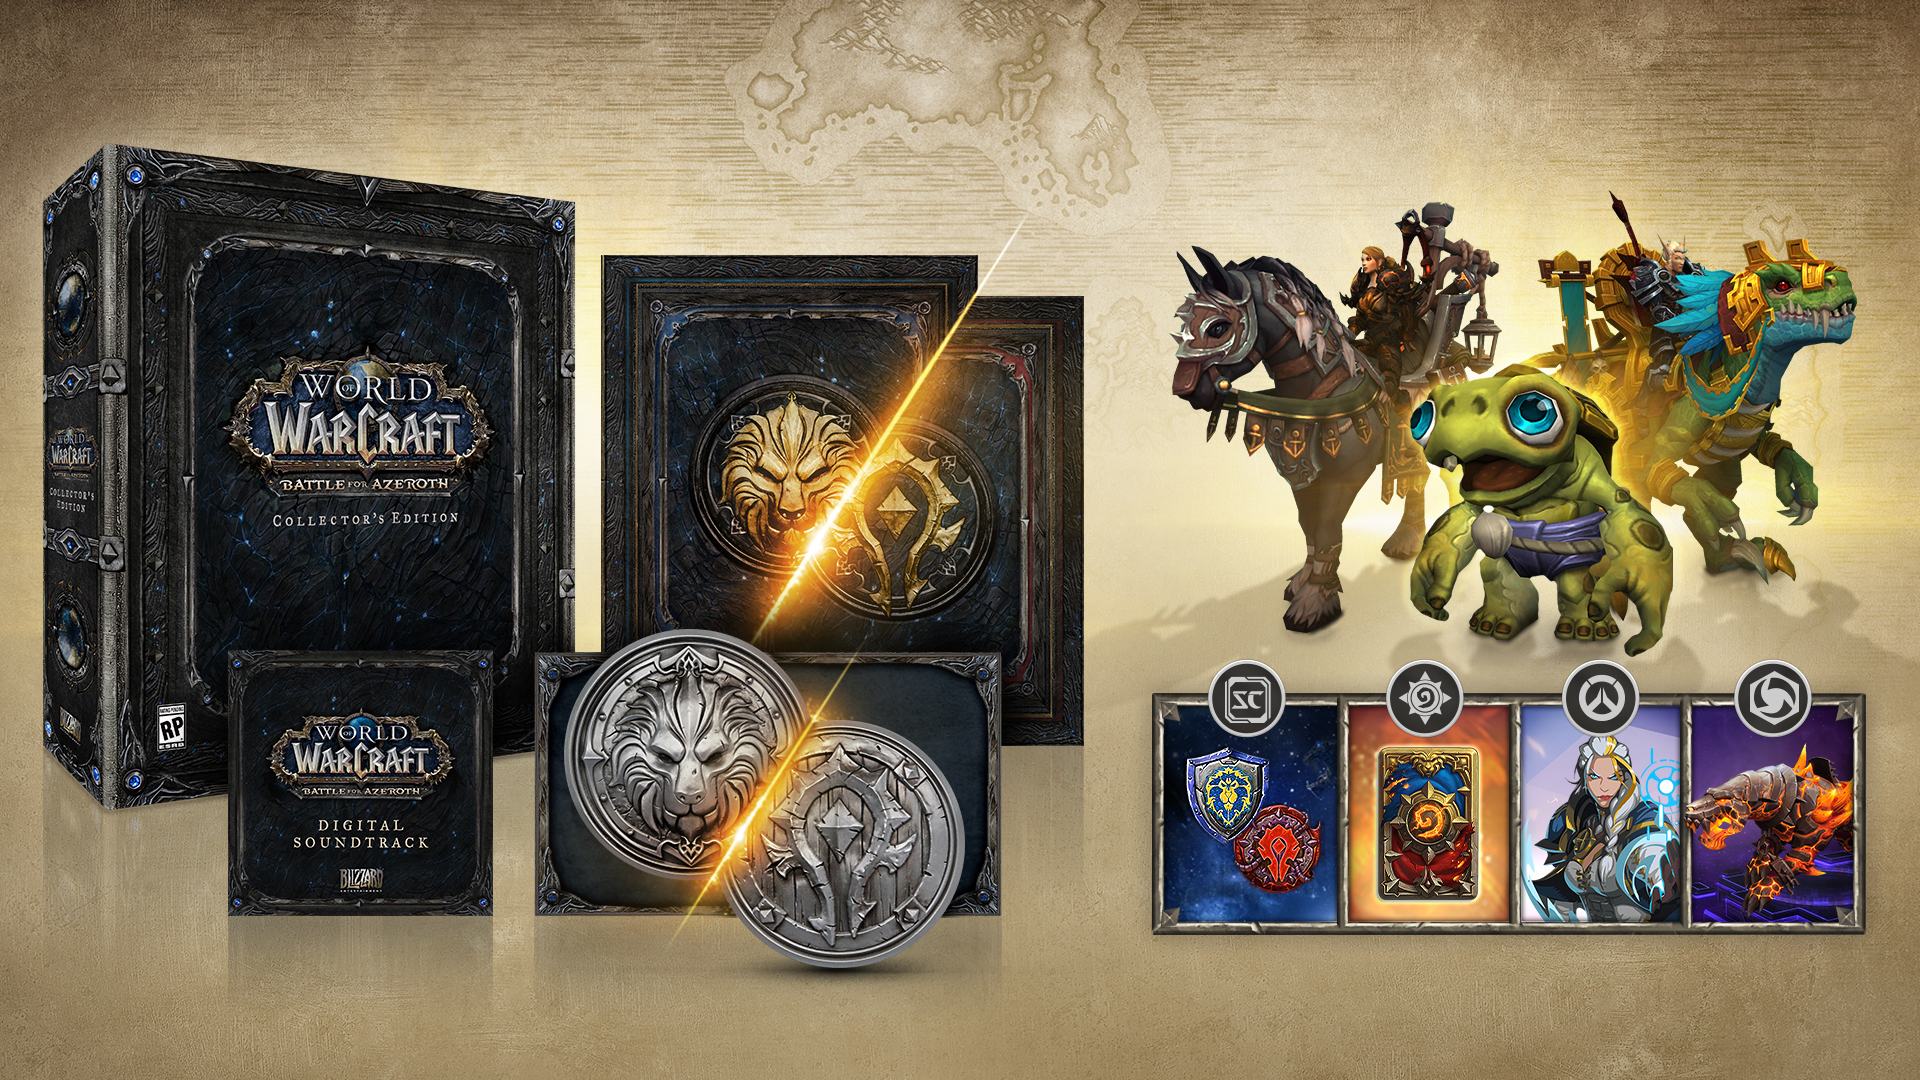 Battle for Azeroth' Gets Release Date, Collector's Edition Details